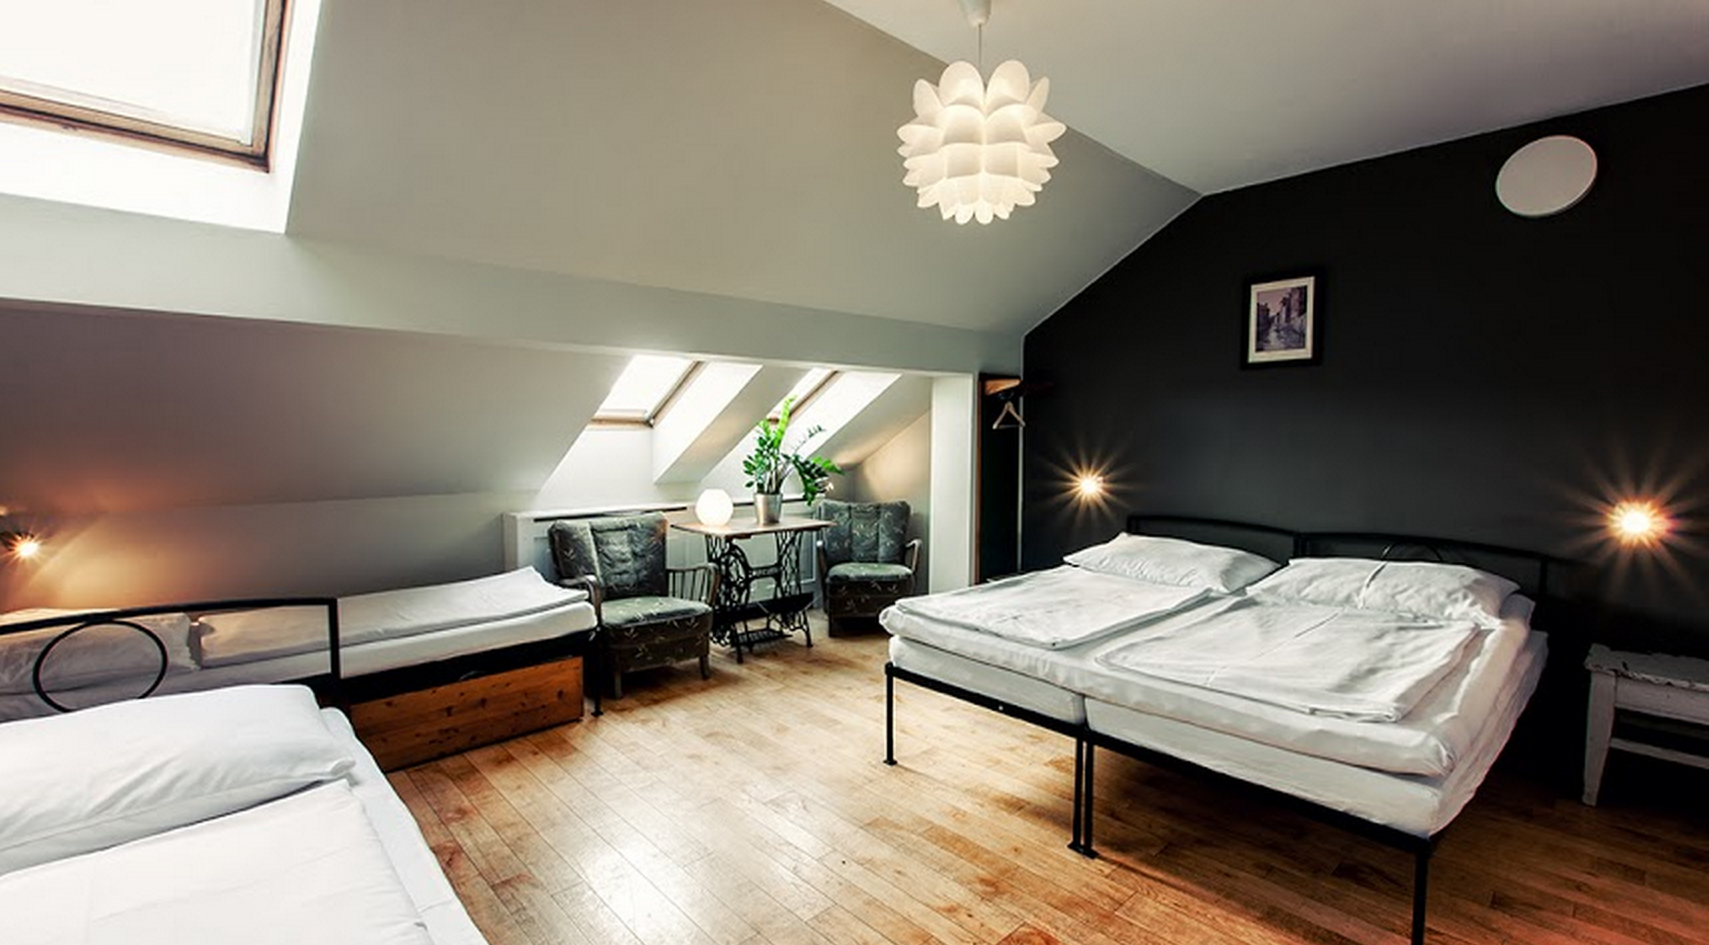 Sir-Tobys-Prague-Top 10 Best Rated Hostels in Prague